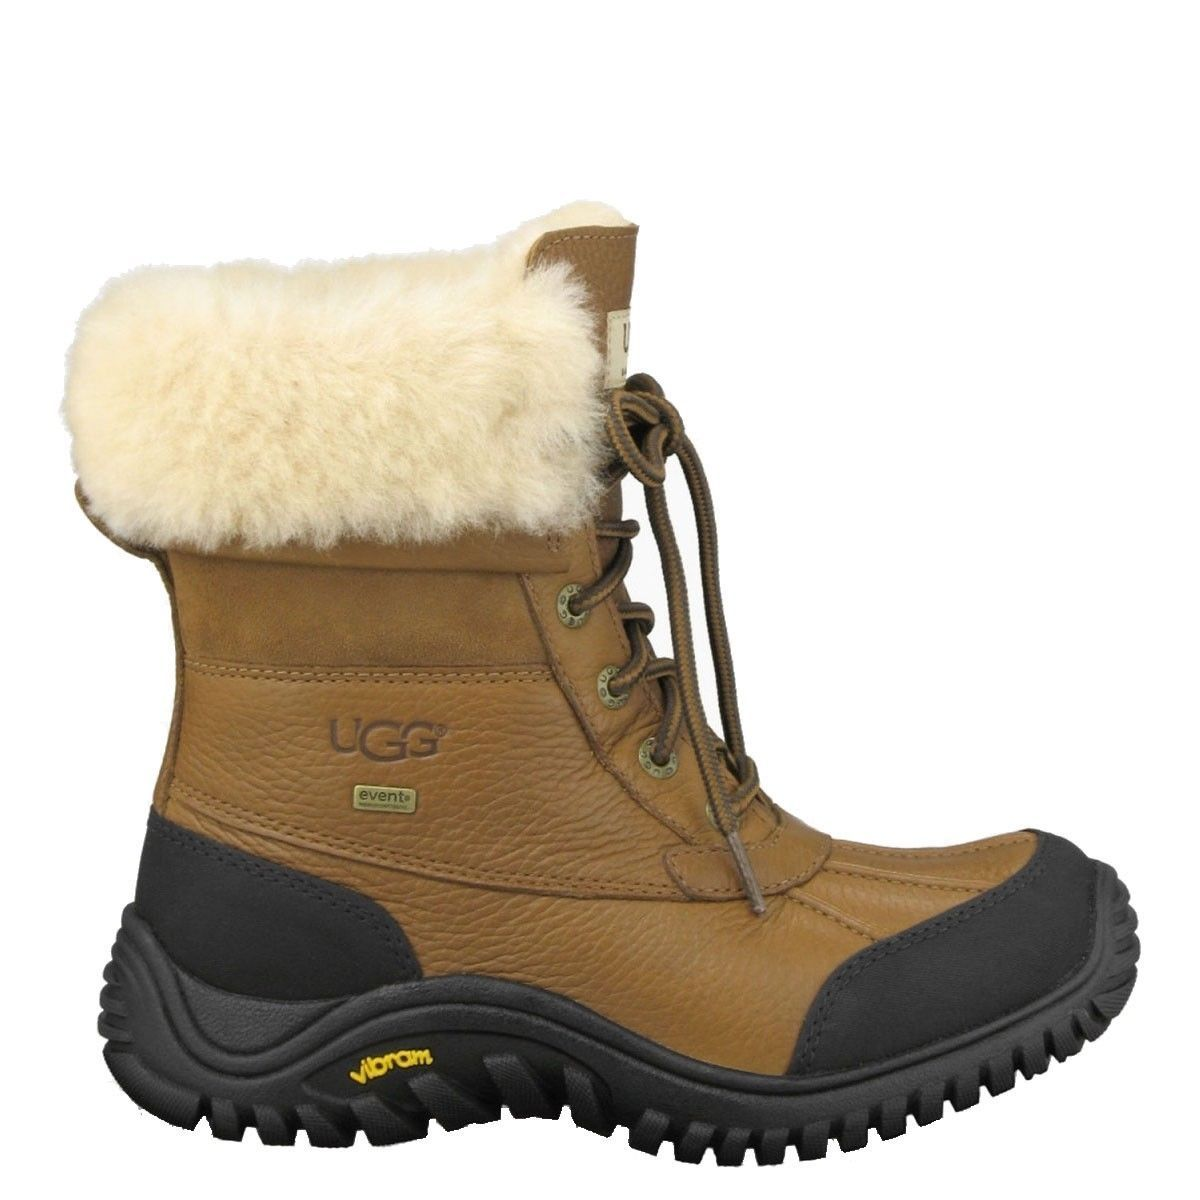 361c89607d3 UGG Women's Adirondack II Boots Mult Sizes and similar items